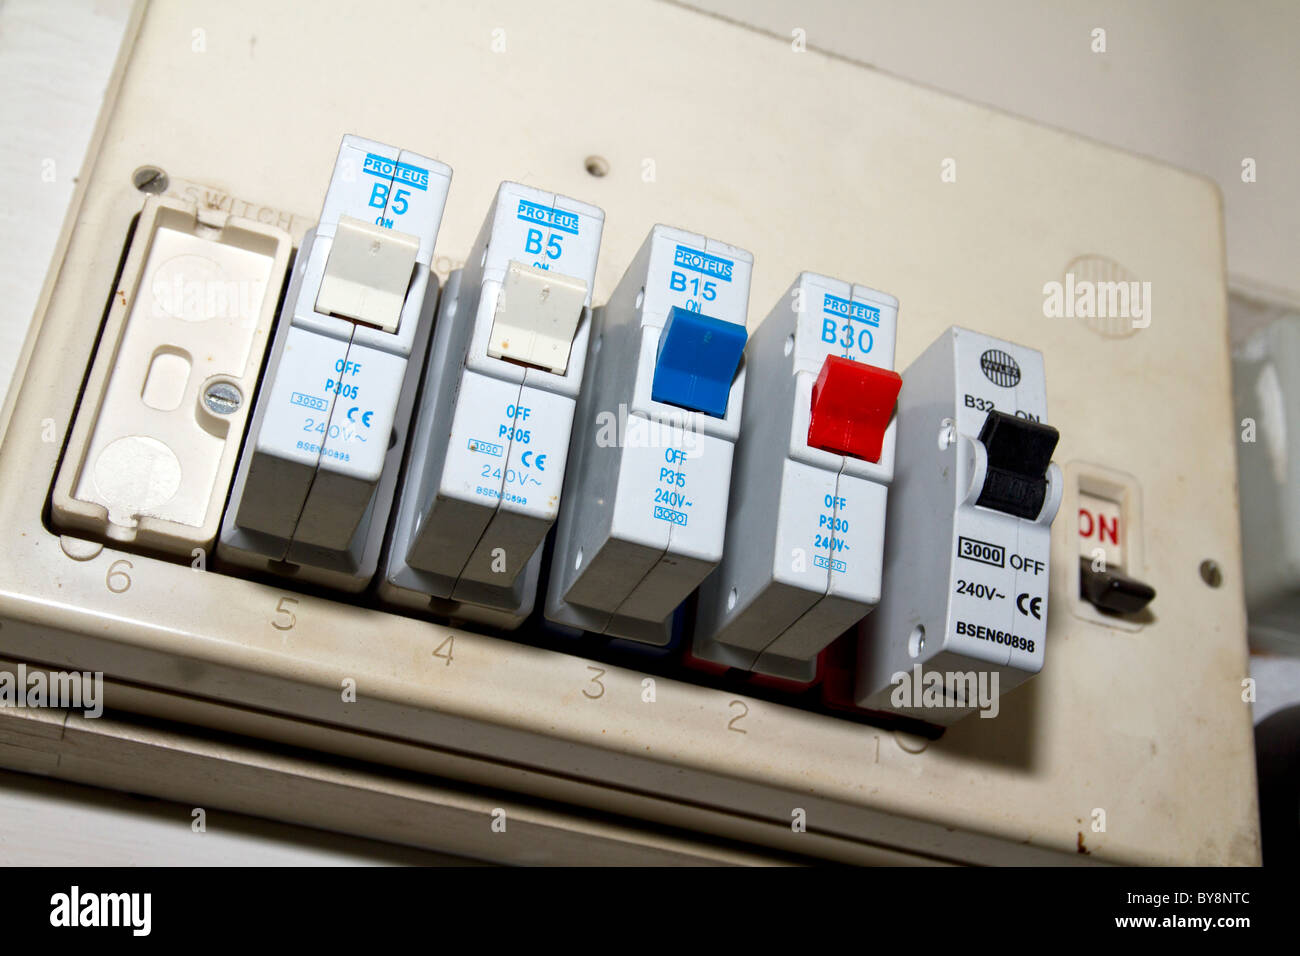 Uk Fuse Box Archive Of Automotive Wiring Diagram Electric Stock Photos Images Alamy Rh Com Colours